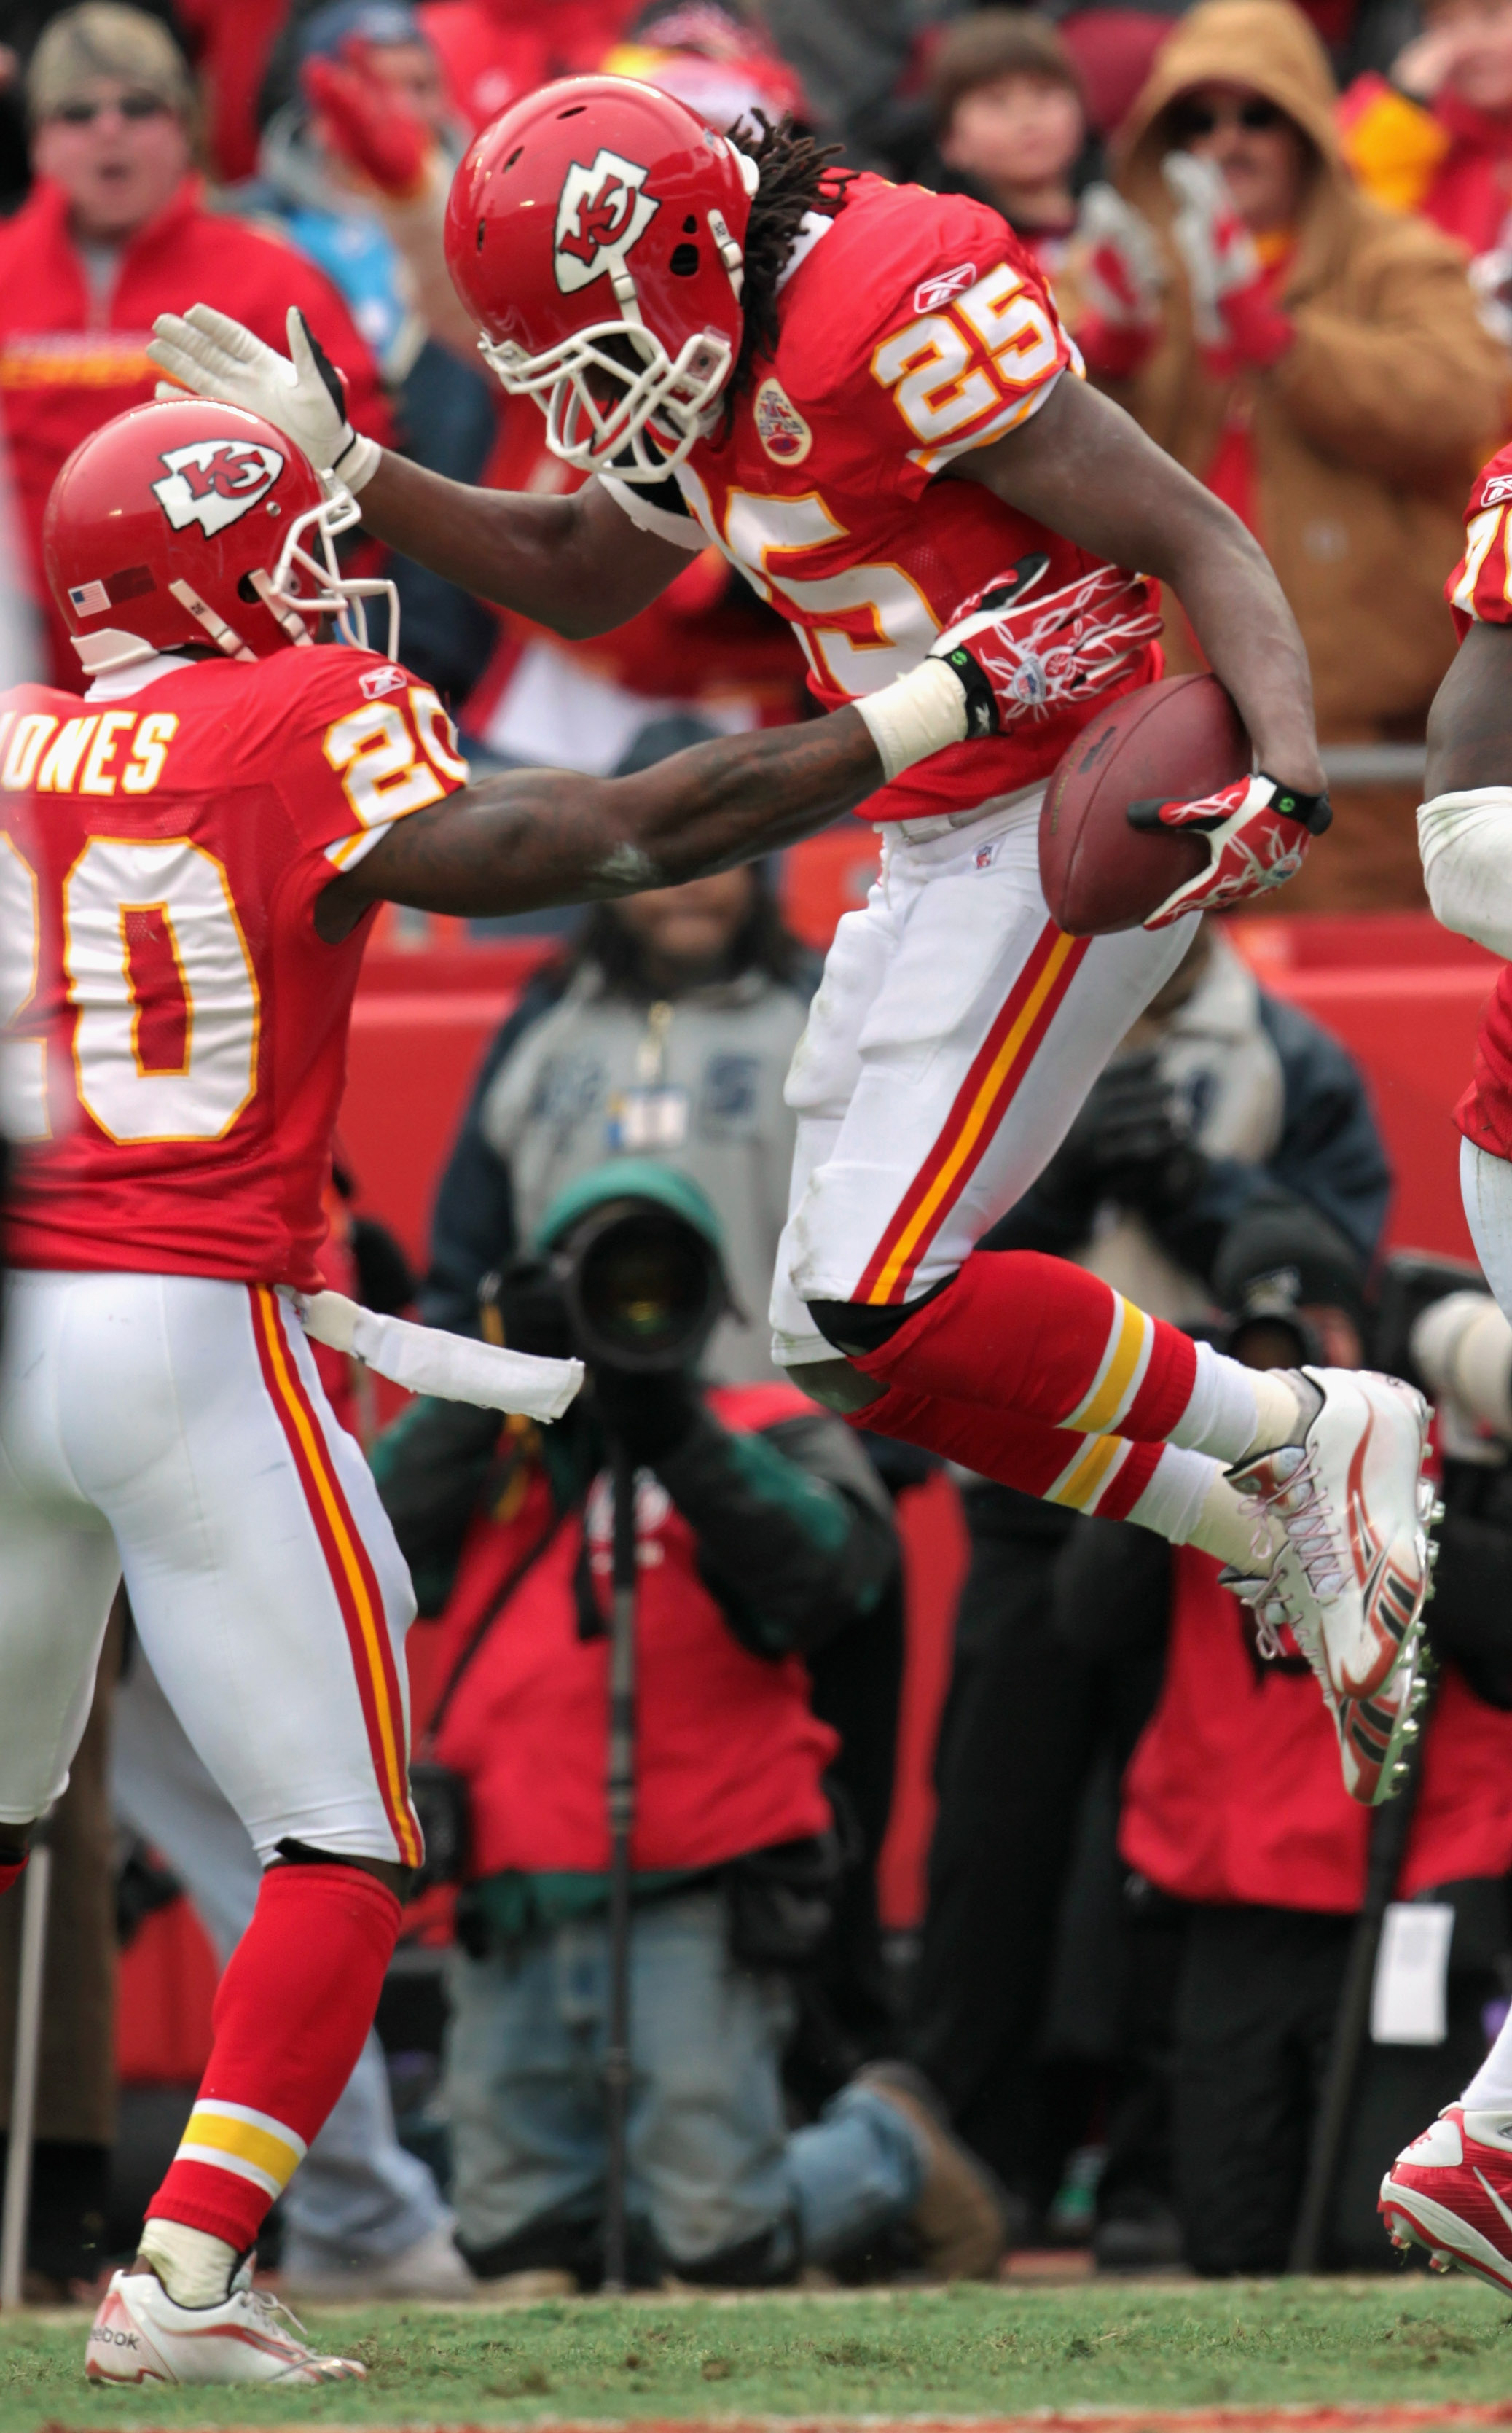 KANSAS CITY, MO - DECEMBER 26:  Jamaal Charles #25 of the Kansas City Chiefs celebrates with Thomas Jones #20 after scoring a touchdown during the game against the Tennessee Titans on December 26, 2010 at Arrowhead Stadium in Kansas City, Missouri.  (Phot